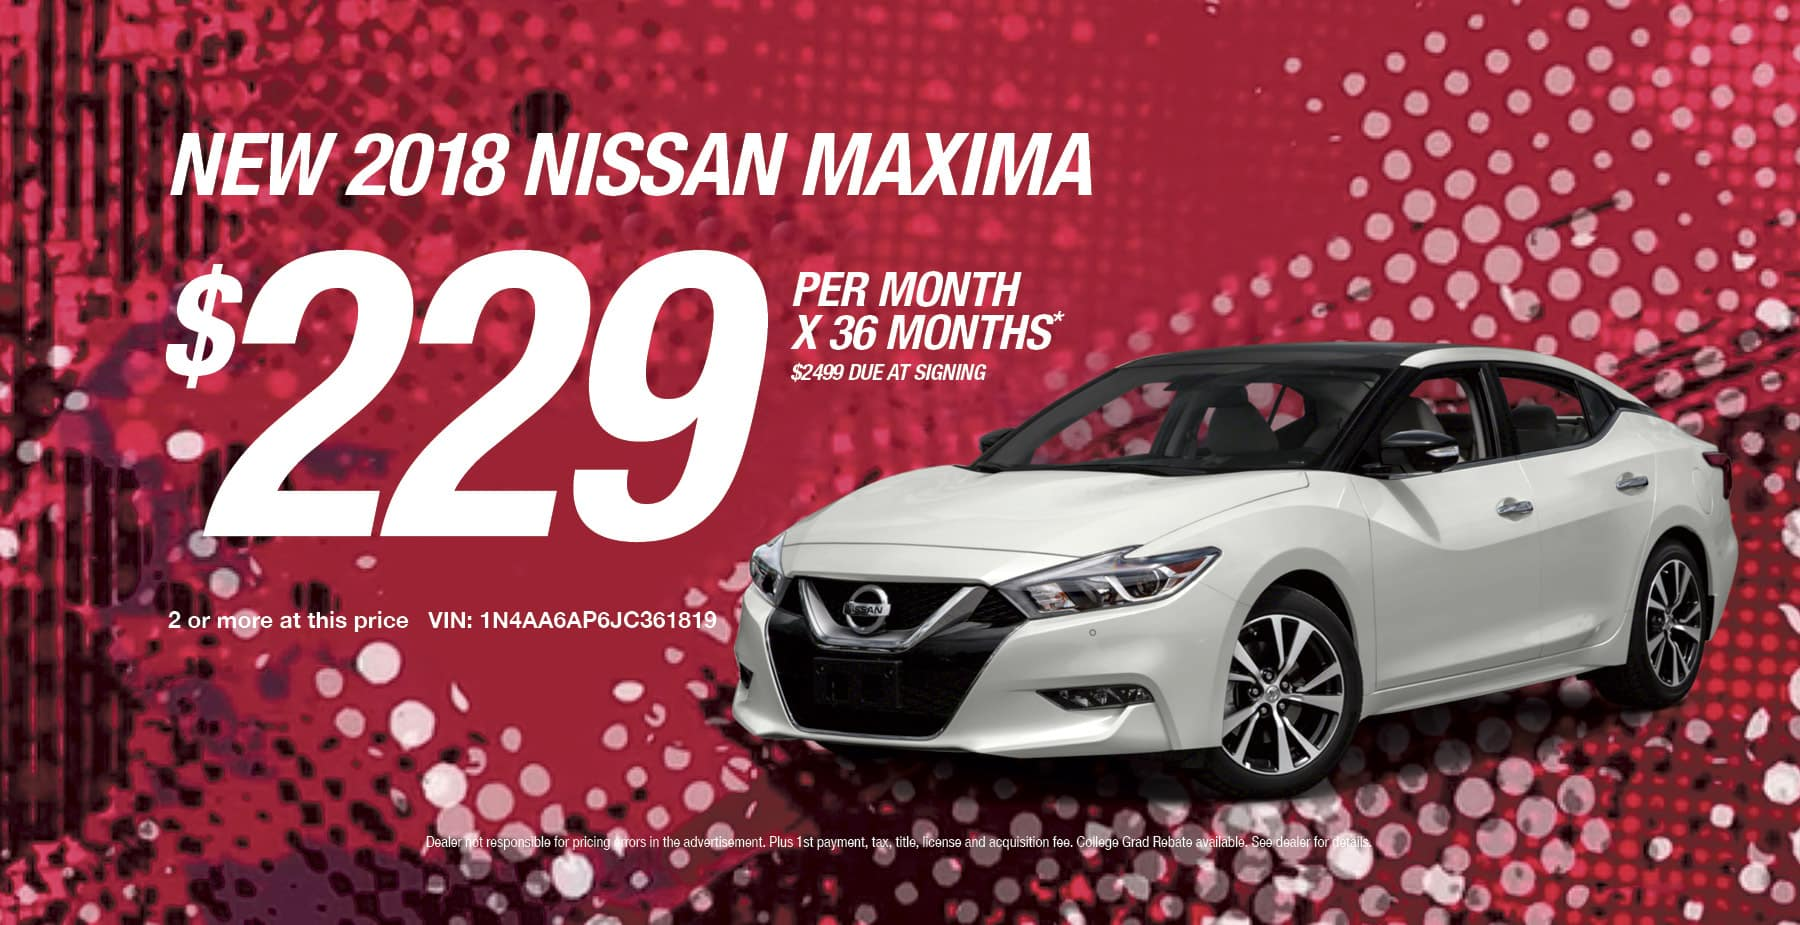 2018 Nissan Maxima March Sale at Star Nissan